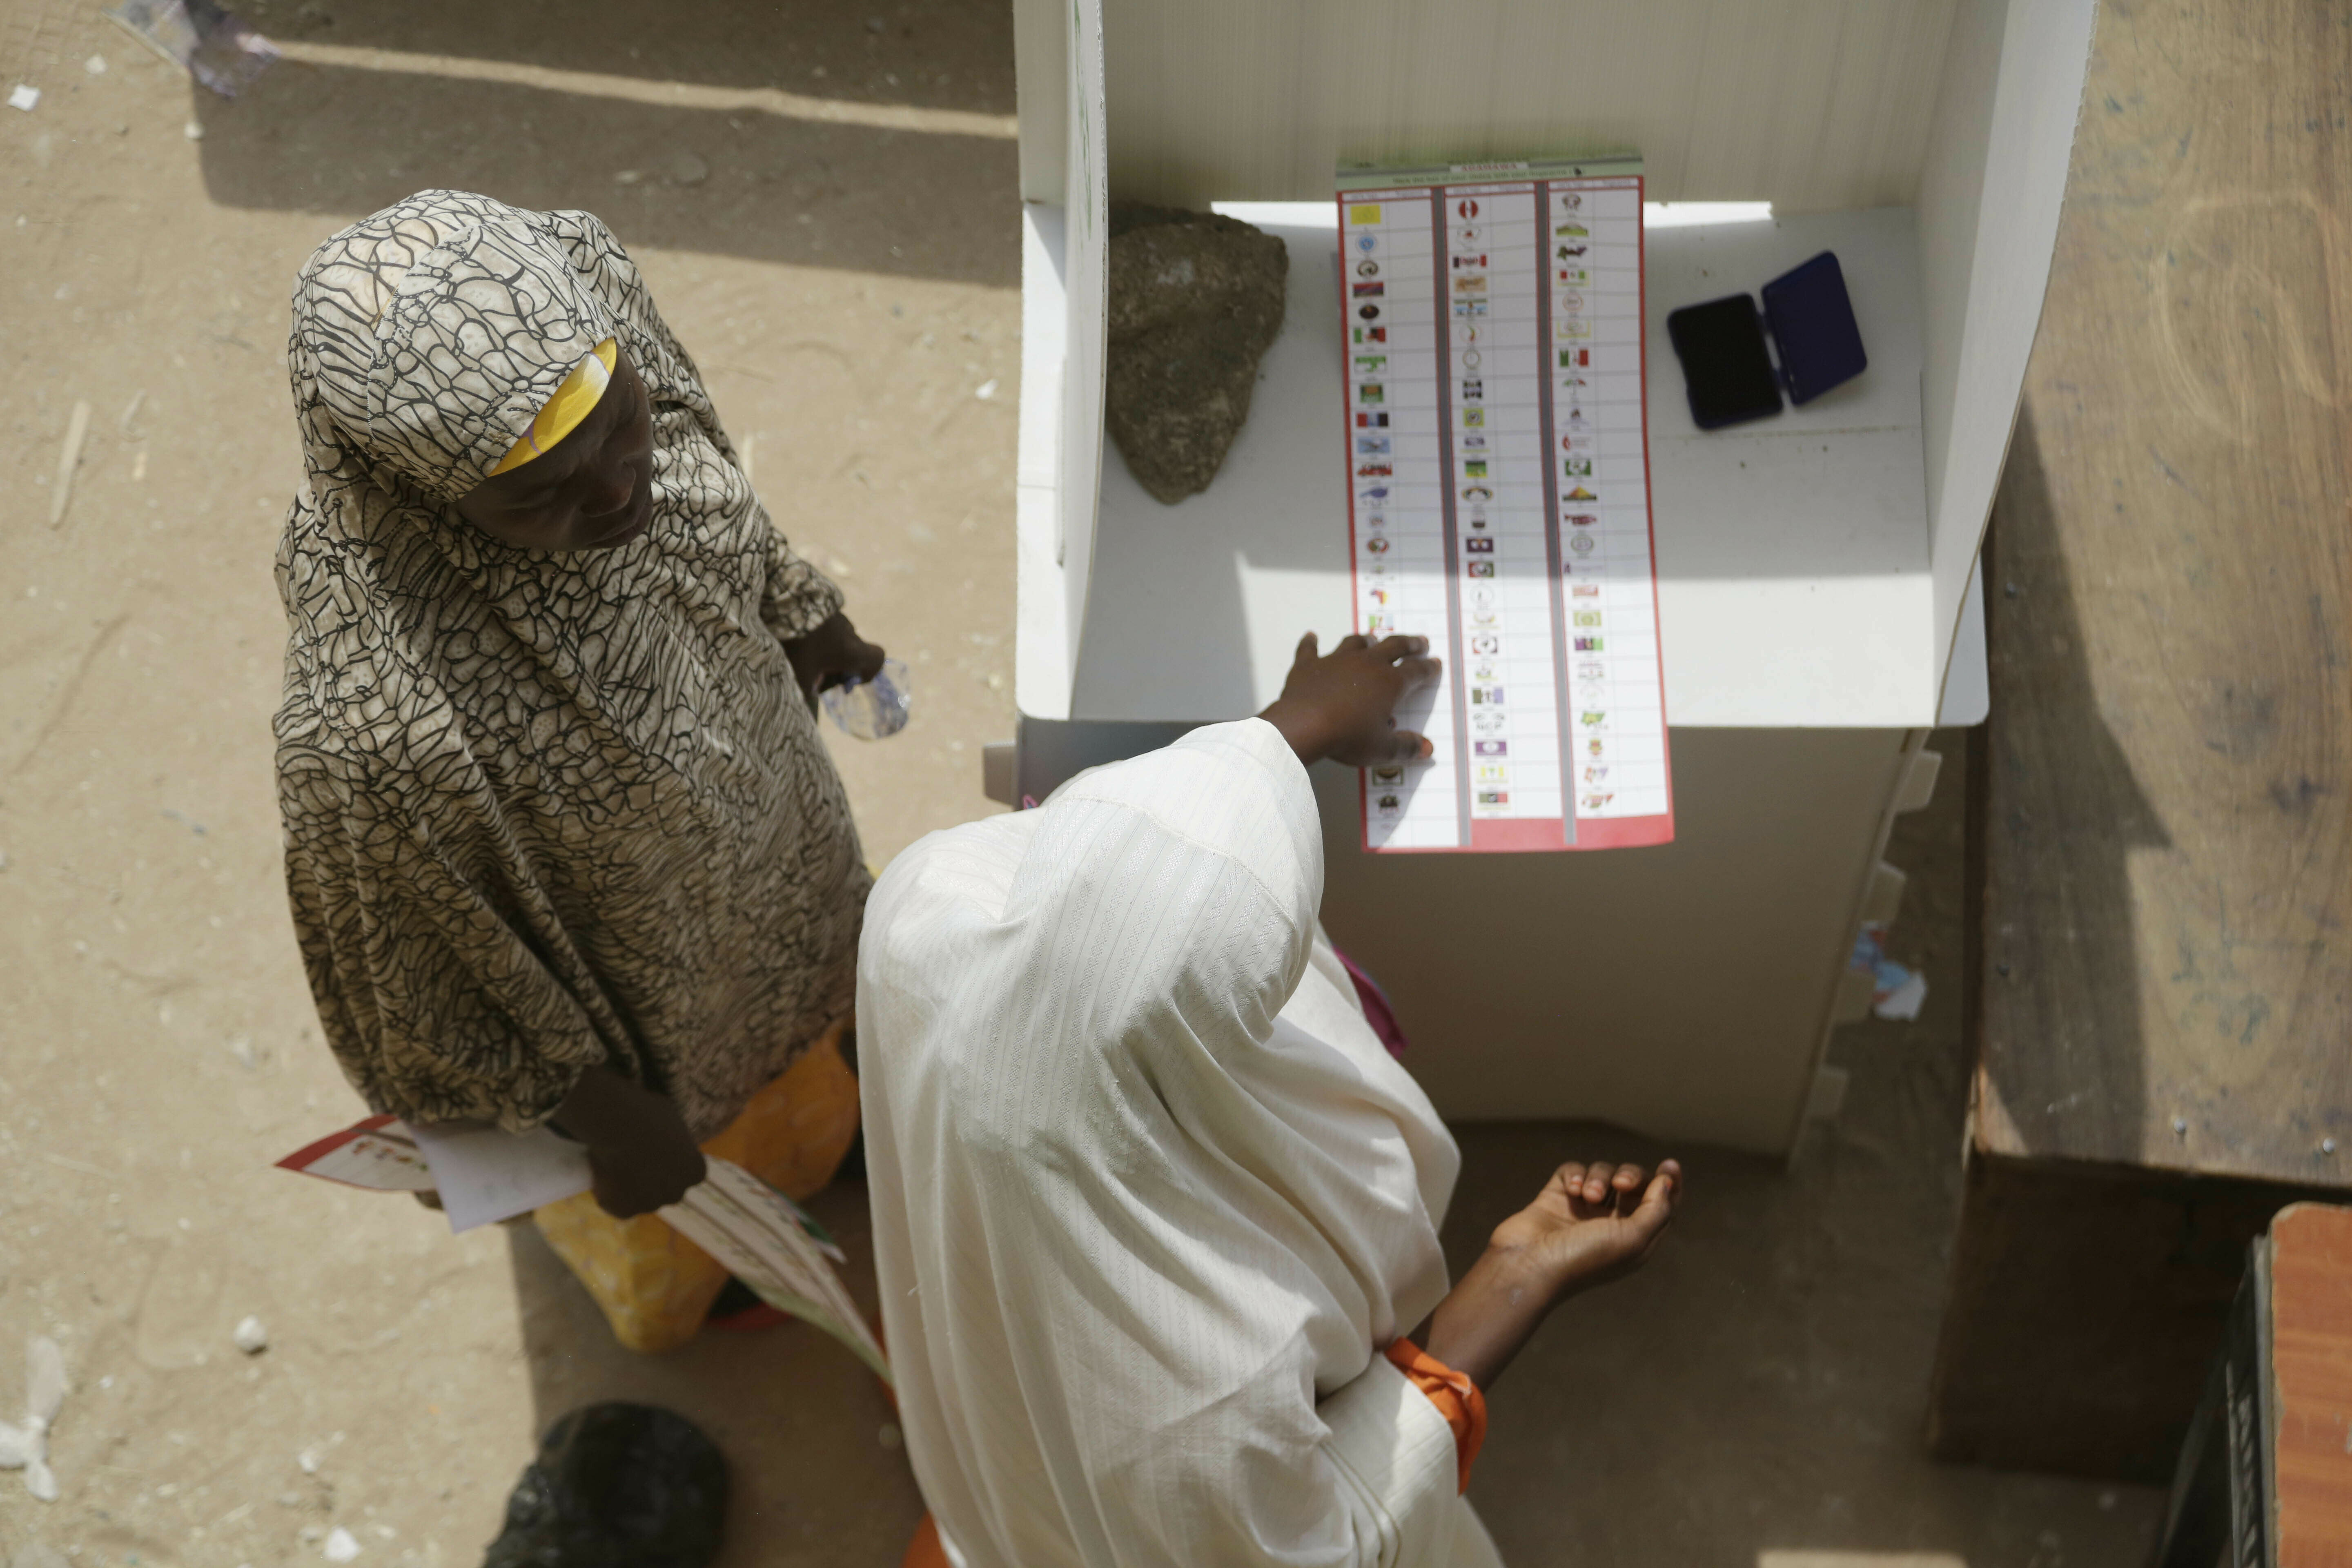 """A woman thumbprints the ballot paper before casting her vote during the Presidential and National Assembly election in Damilu Yola, Nigeria, Saturday, Feb. 23, 2019. Nigerians have waited impatiently for this election, after it was delayed because of logistical """"challenges,"""" just hours before polls were set to open, but now the people get their chance to choose their leaders.(AP Photo/Sunday Alamba)"""